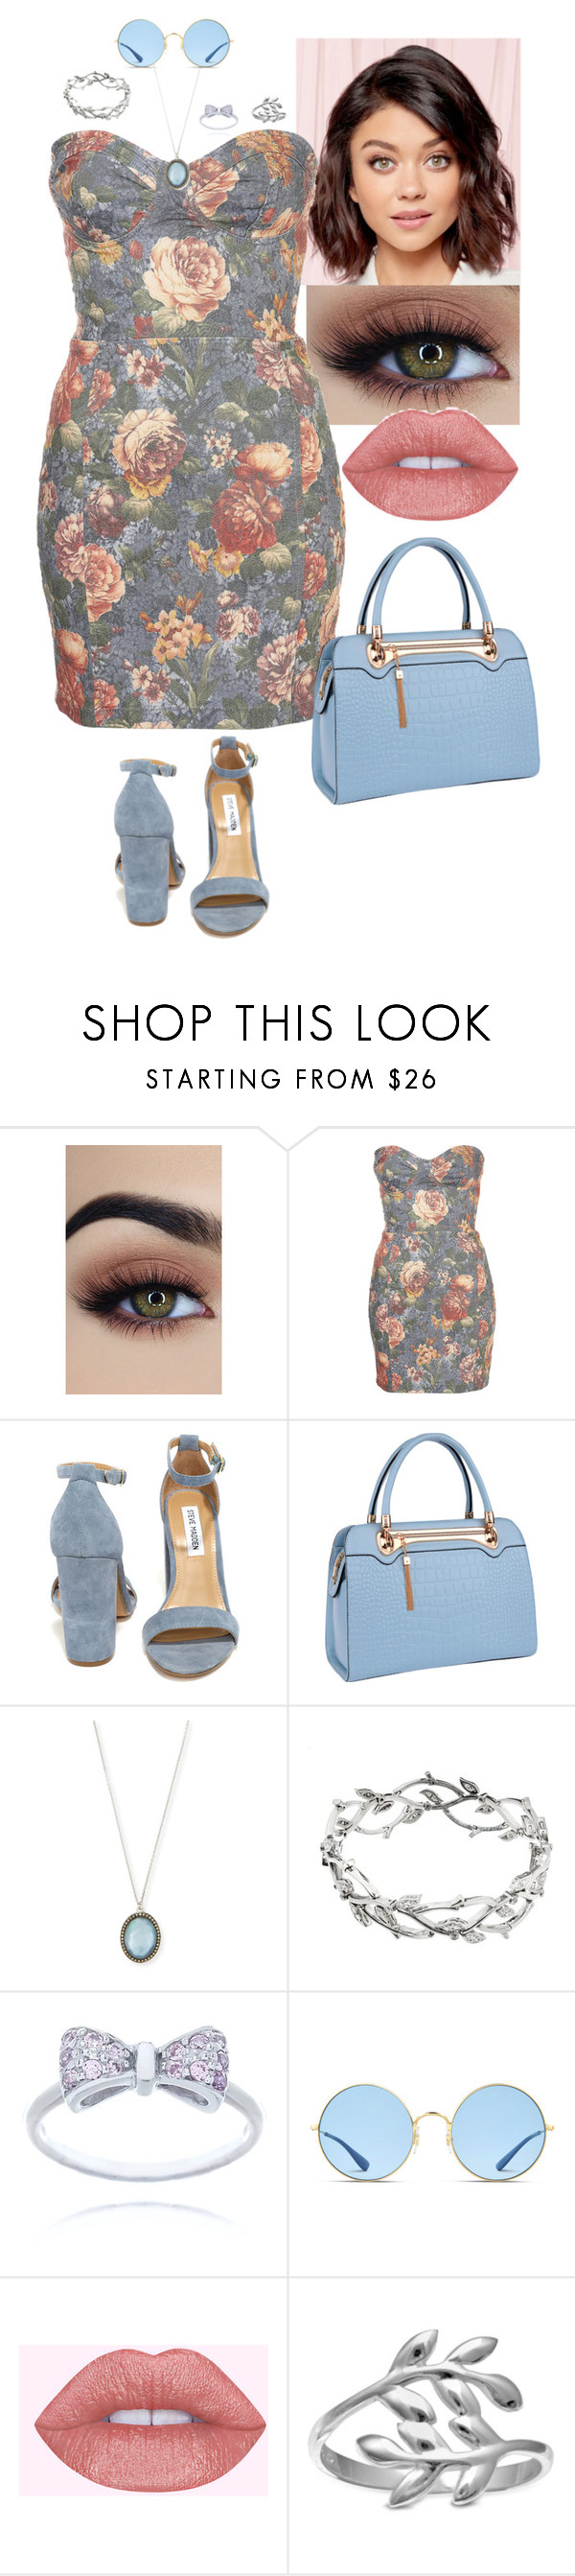 """""""Untitled #349"""" by stinze on Polyvore featuring Steve Madden, Relaxfeel, Armenta, Tiffany & Co., Ray-Ban and Belk Silverworks"""